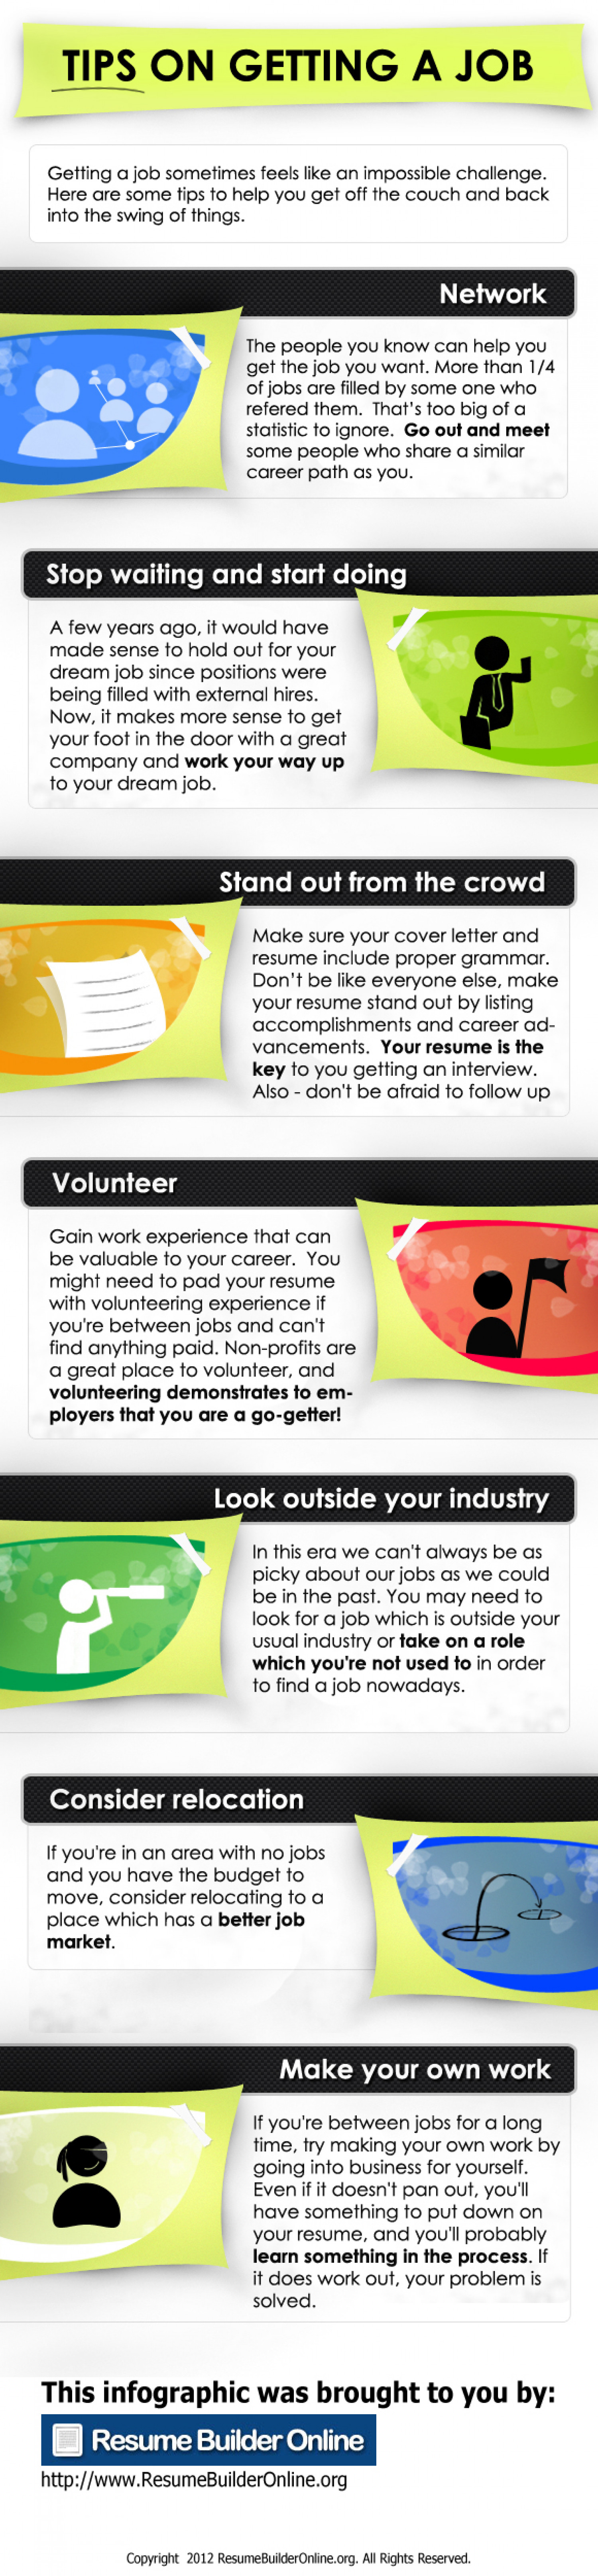 tips on getting a job ly tips on getting a job infographic